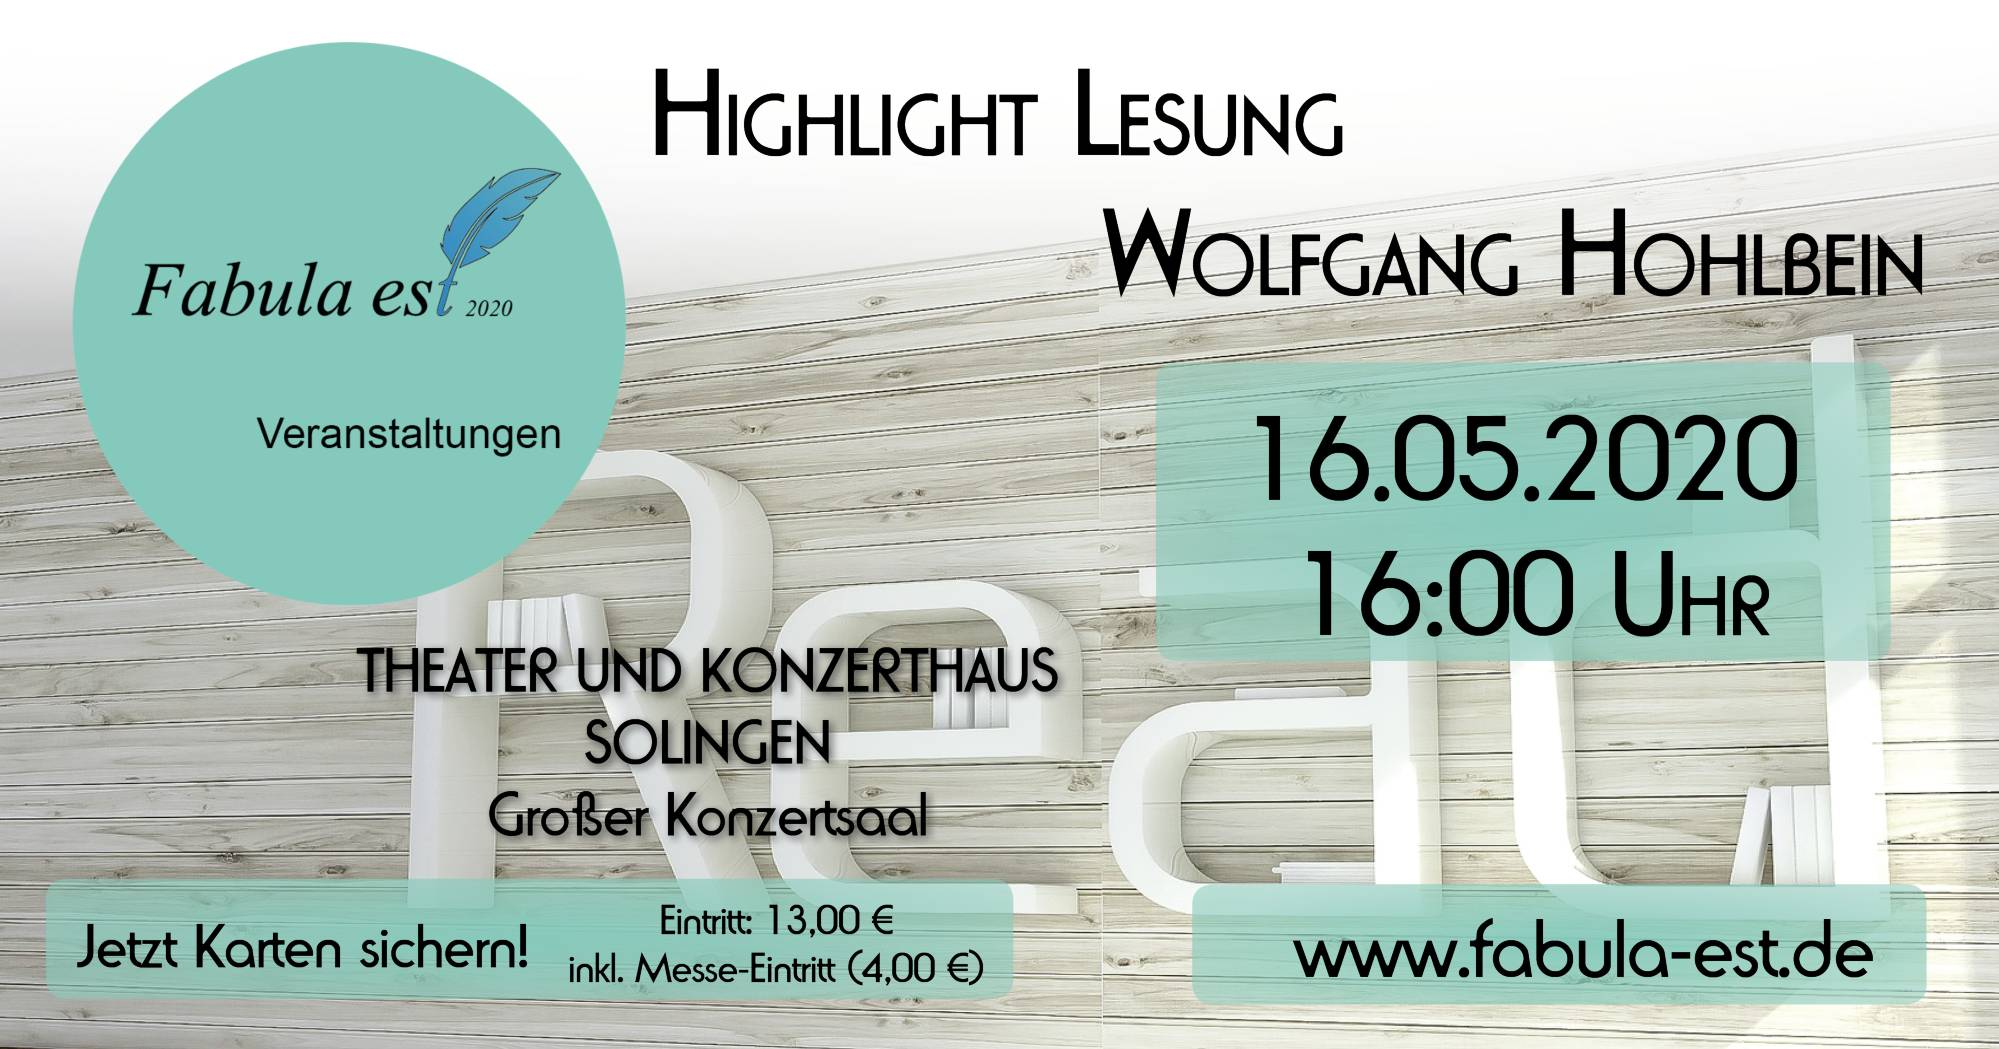 Lesung_WolfgangHohlbein19.05.20